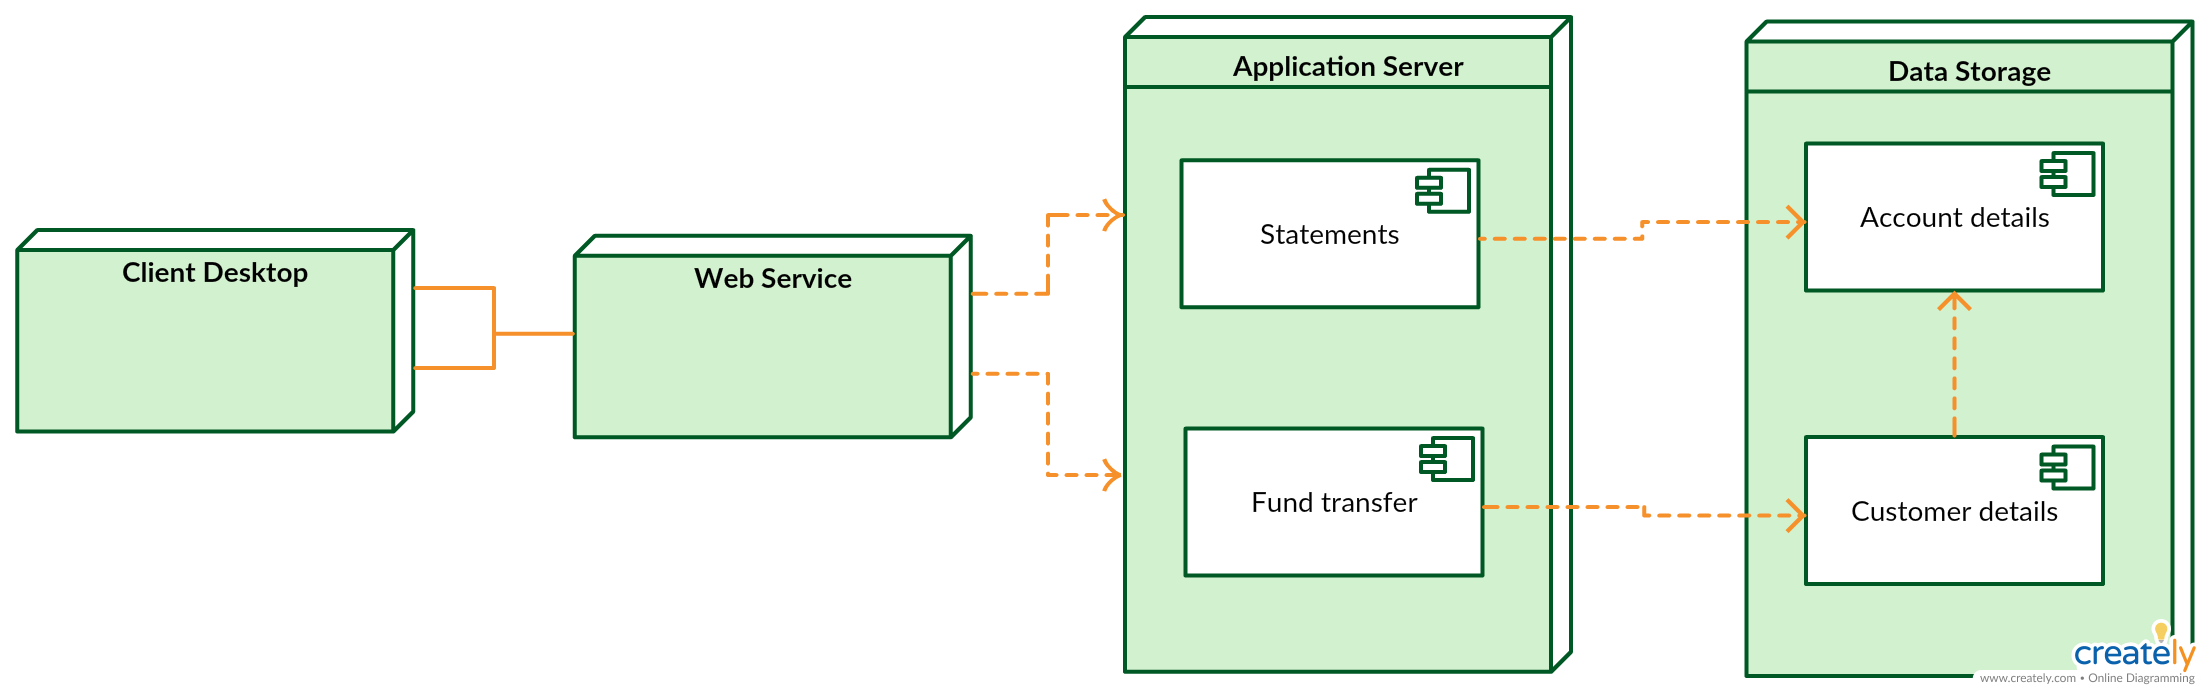 deployment diagram for online banking transaction system this diagram illustrates the deployment diagram template for online bank transaction process  [ 2209 x 694 Pixel ]